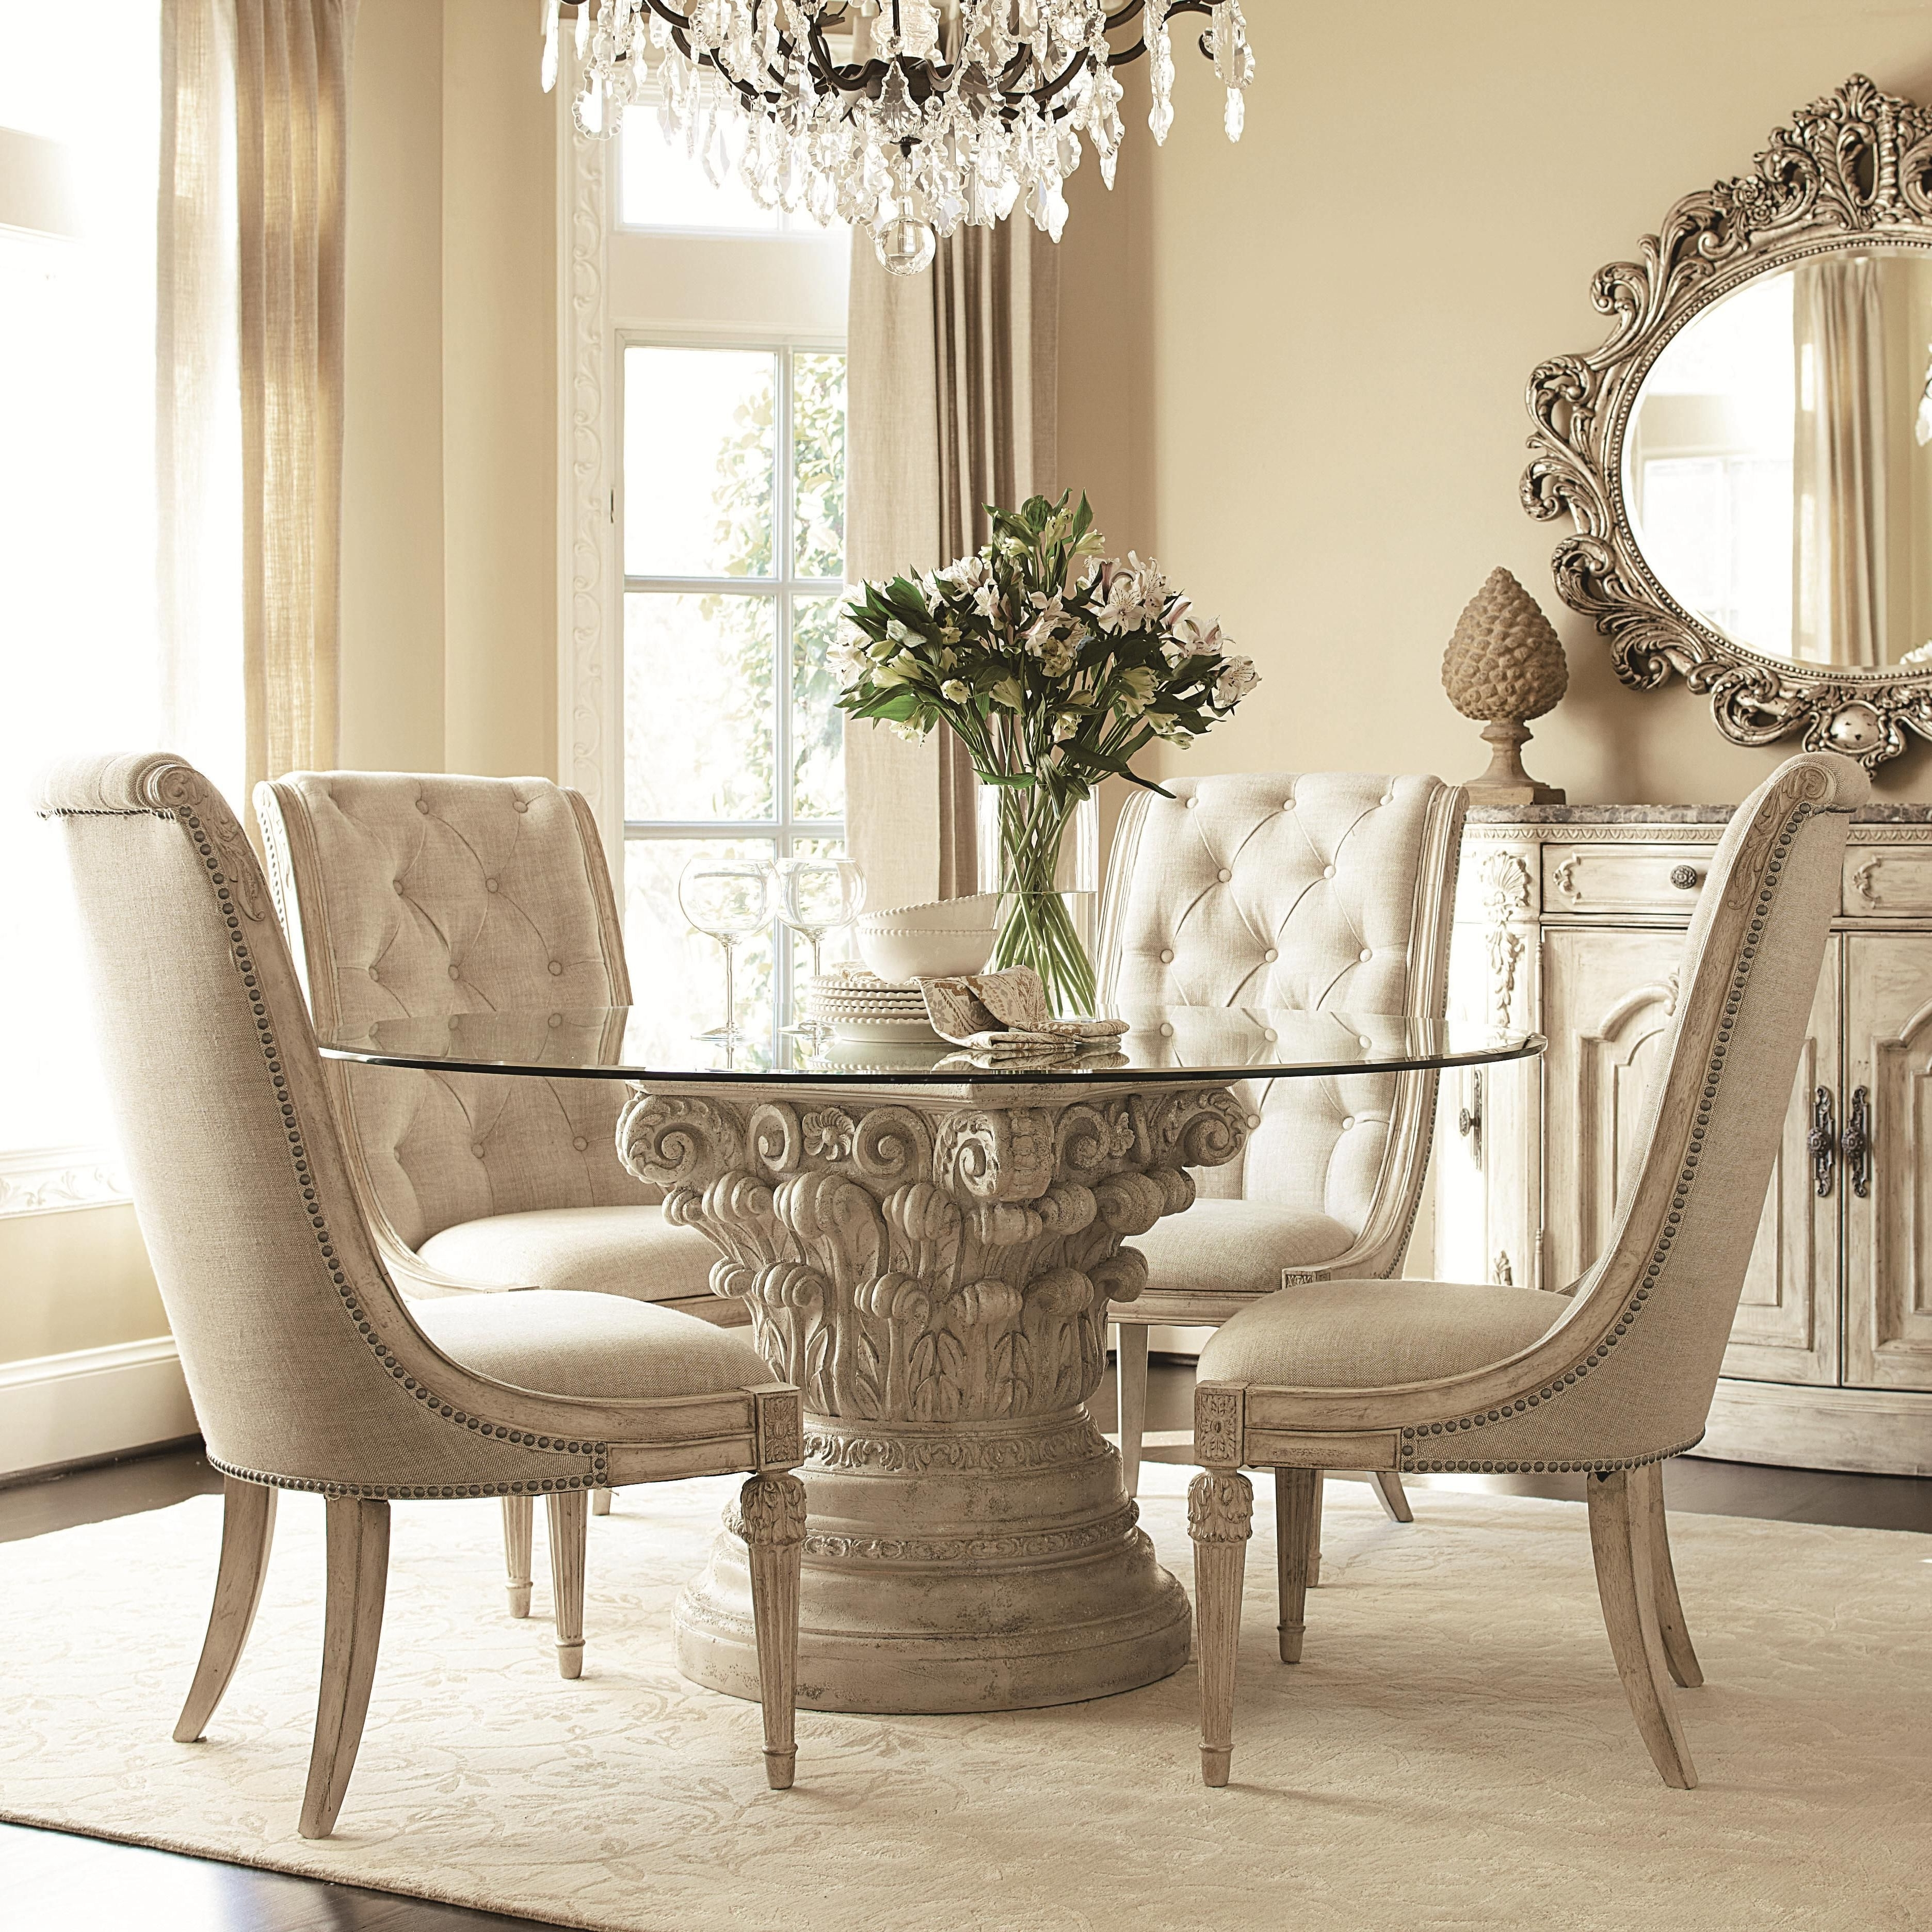 Jessica Mcclintock Home – The Boutique Collection 5 Piece Round With Well Liked Candice Ii 5 Piece Round Dining Sets (View 24 of 25)